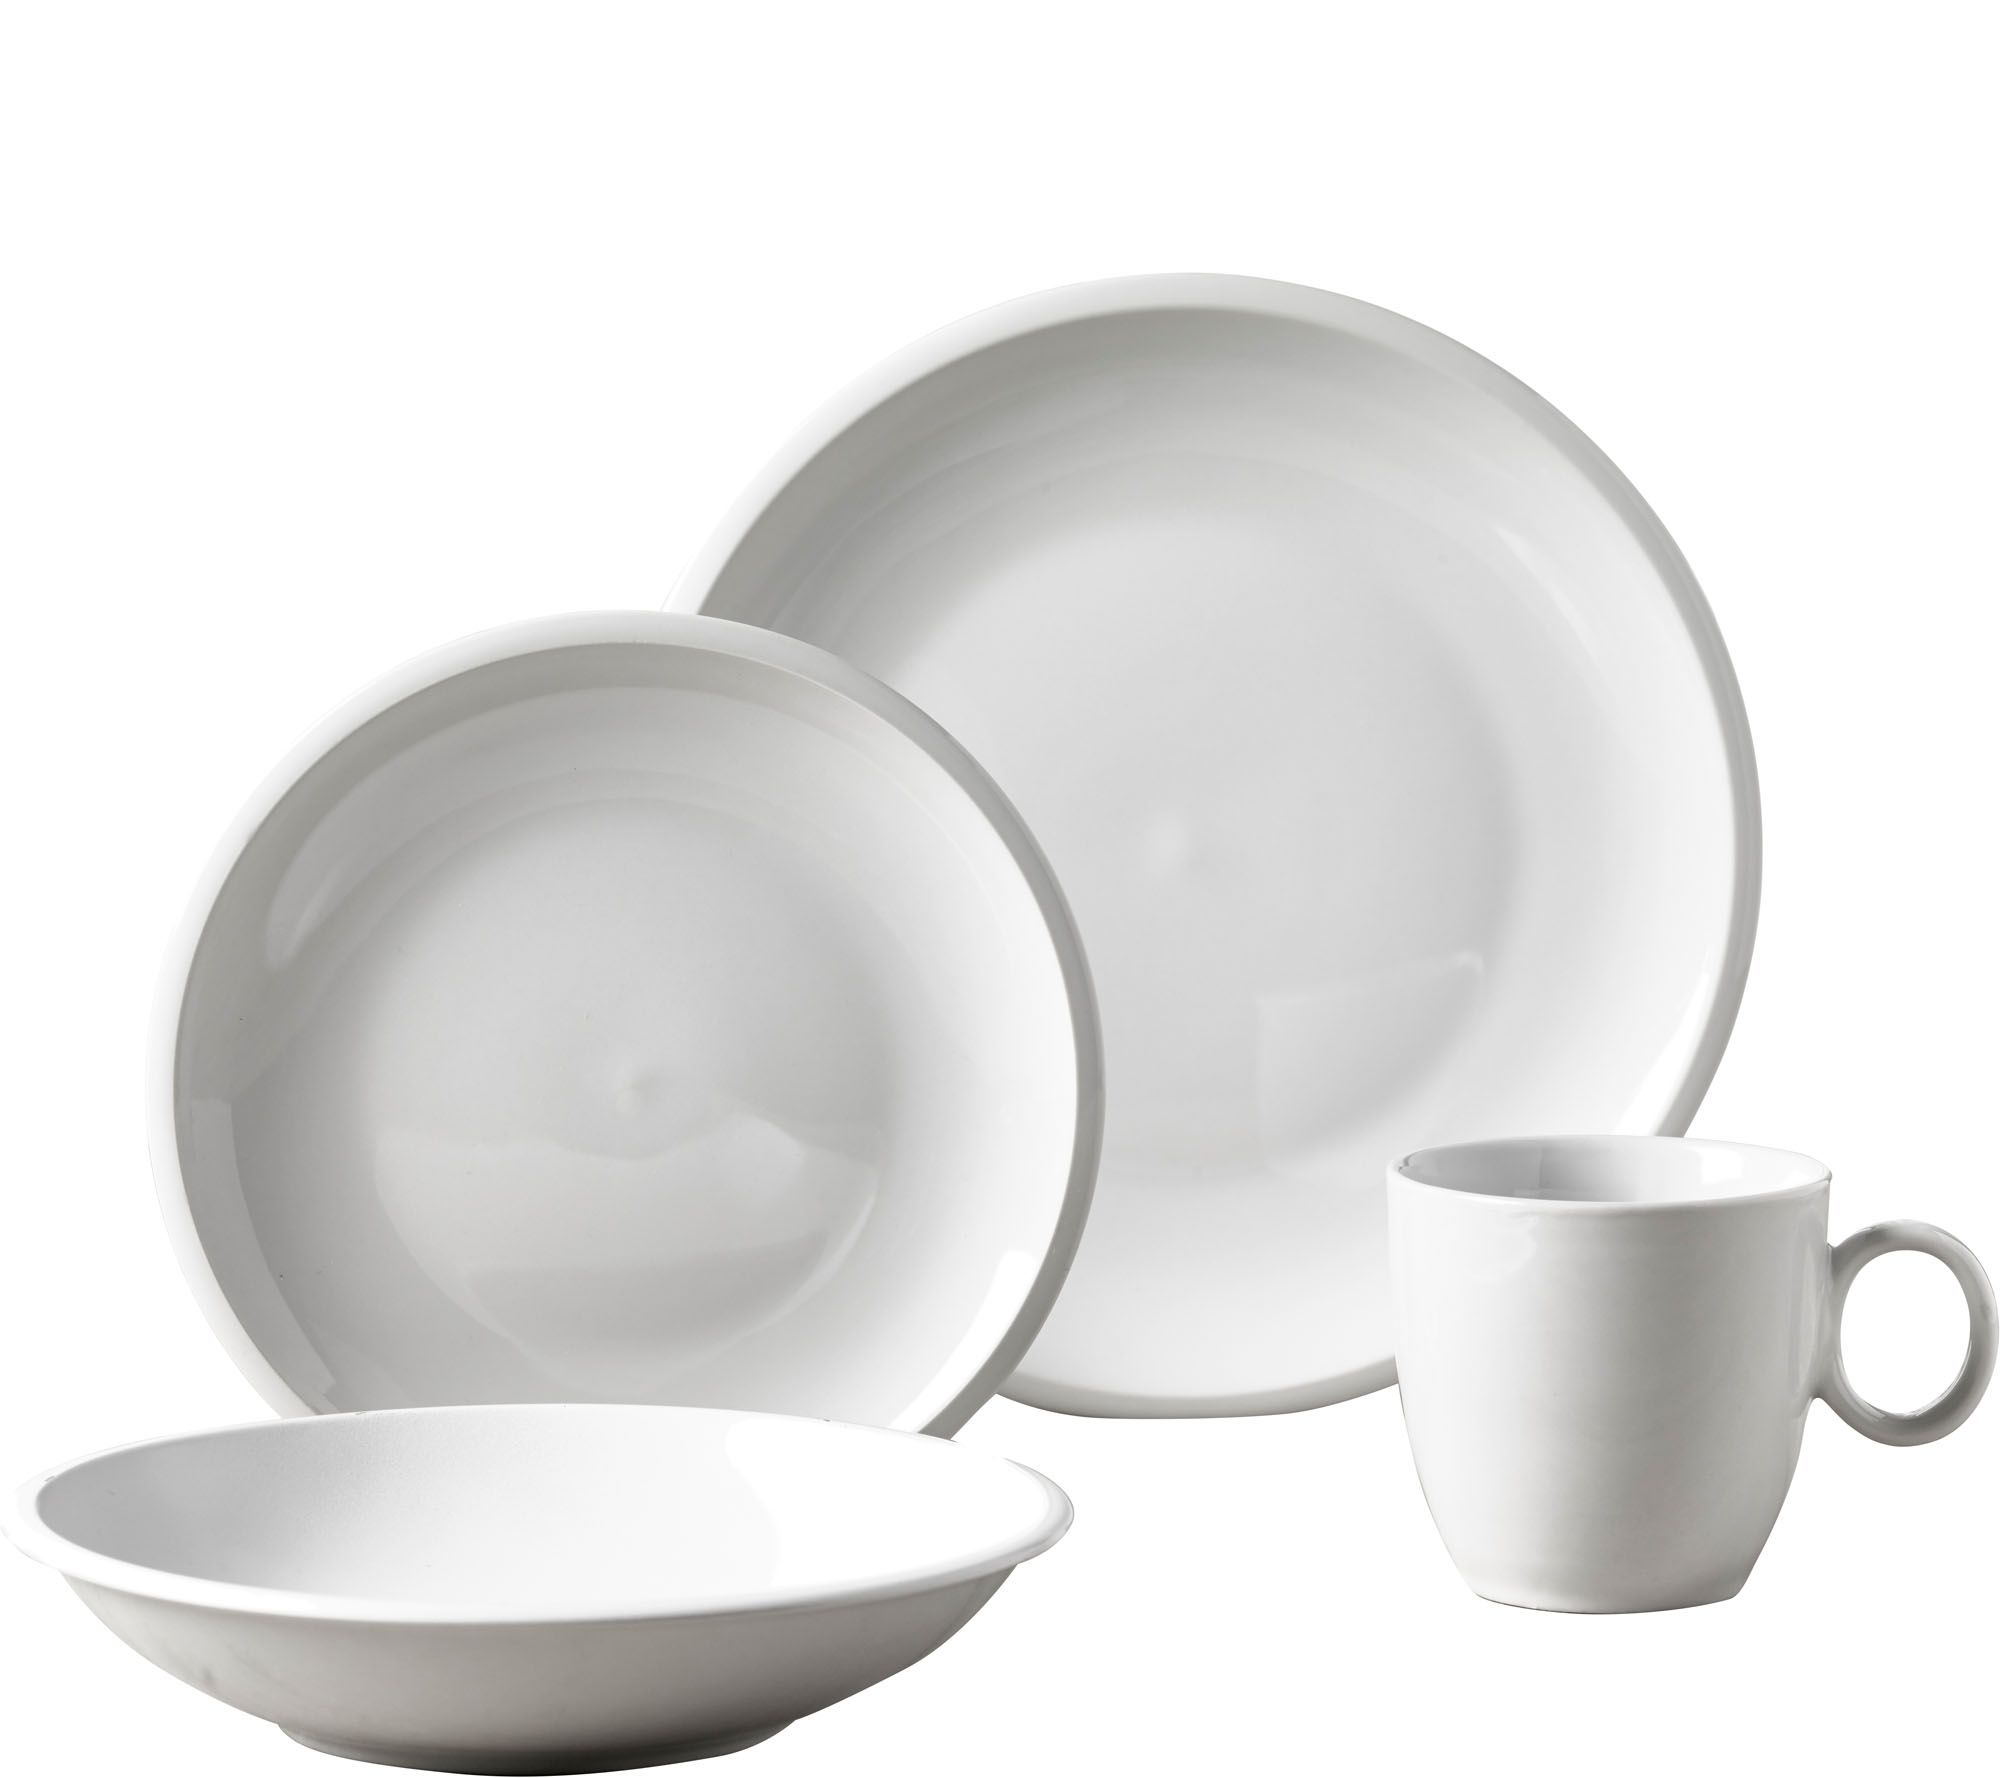 Tabletops Gallery 16 Piece Dinnerware Set   Ribbon U2014 QVC.com